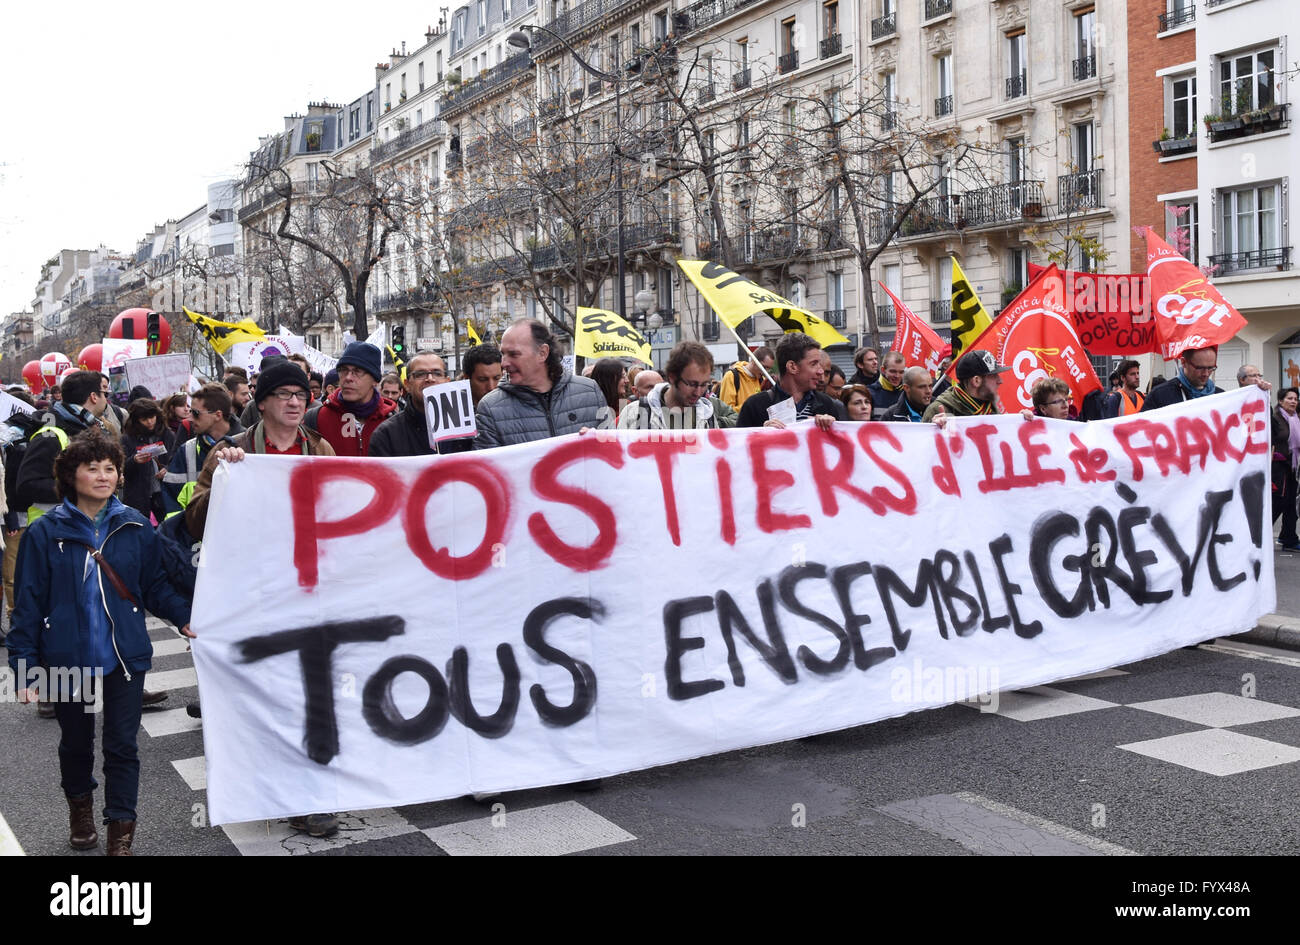 Paris, France. 28th Apr, 2016. Demonstrators march in protest against French government's reform of the labor code, Stock Photo